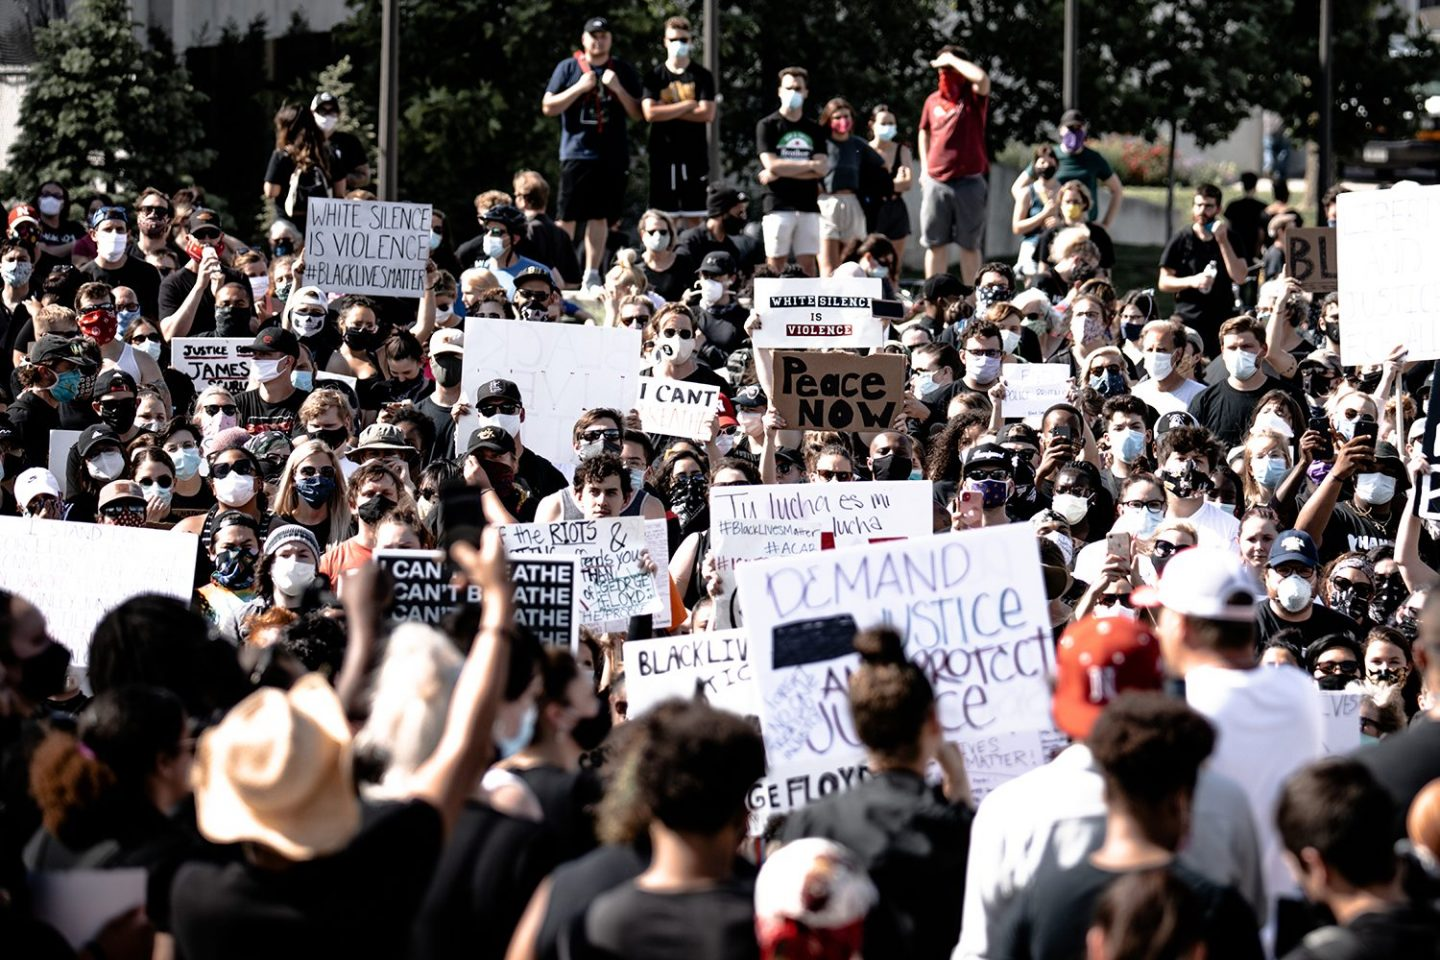 A crowd of protesters wearing masks and holding placards protest against police brutality and racism in the US